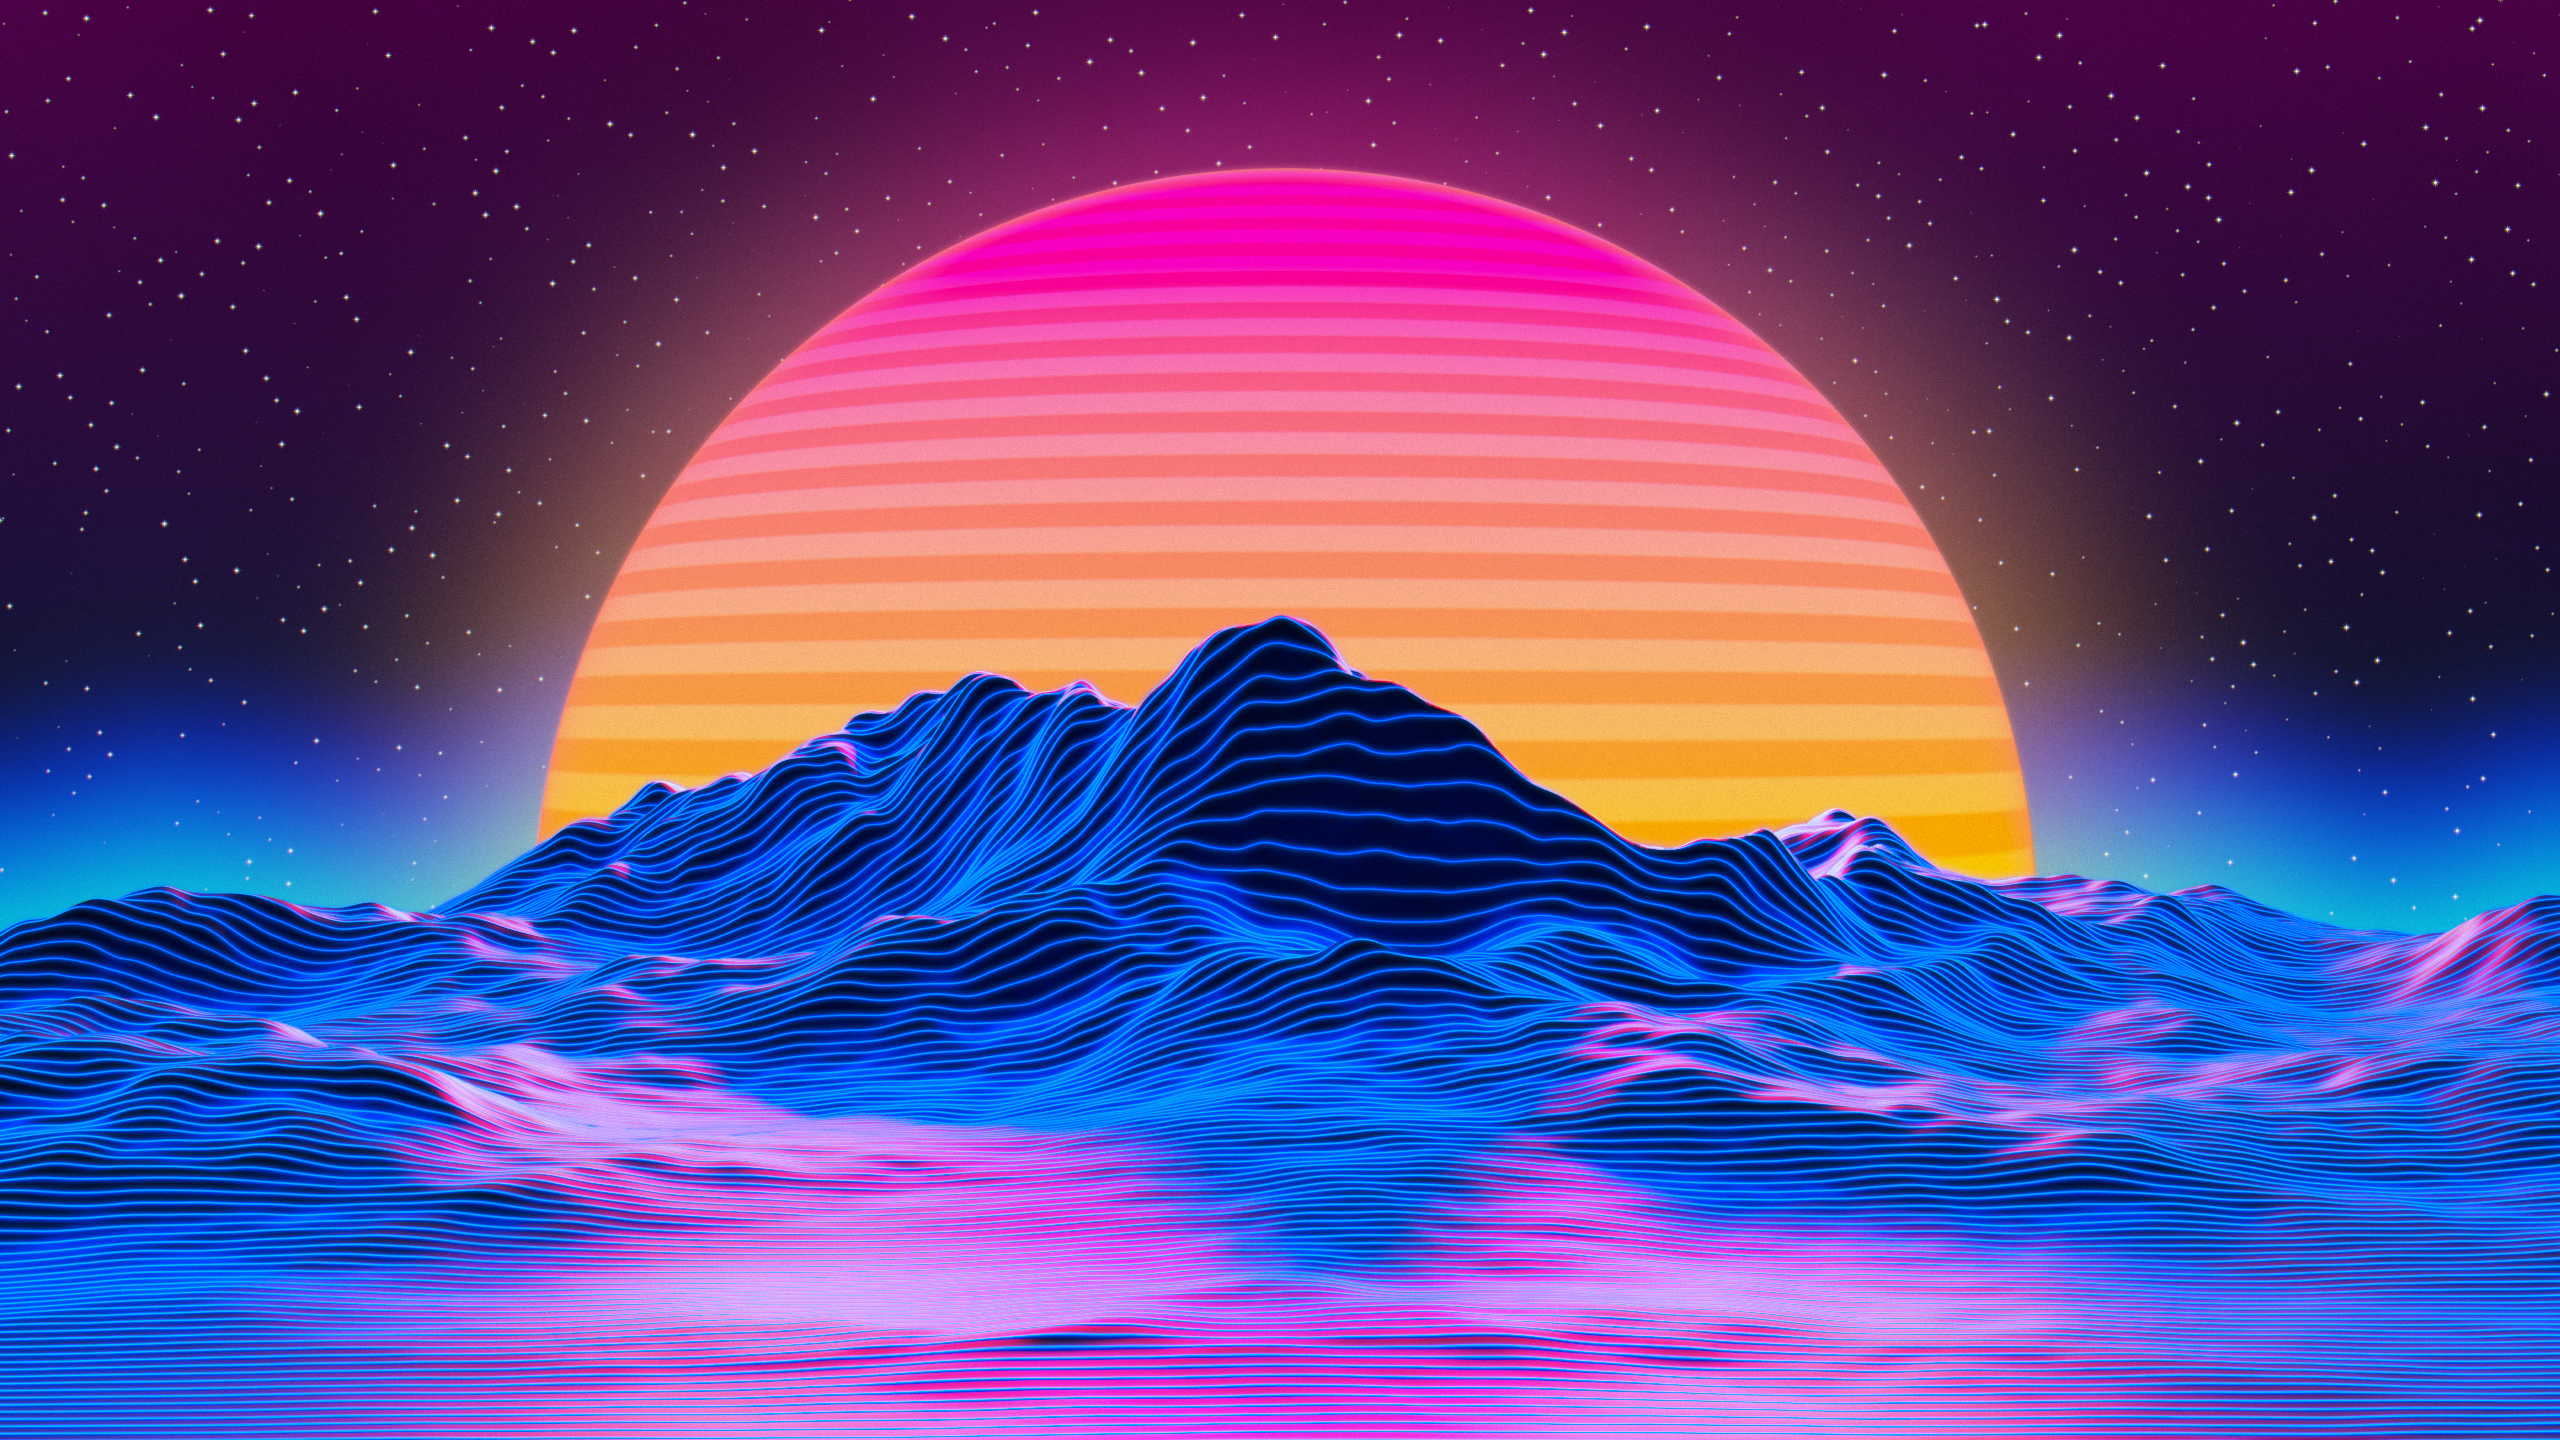 General 2560x1440 OutRun vaporwave digital art synthwave Retrowave neon artwork